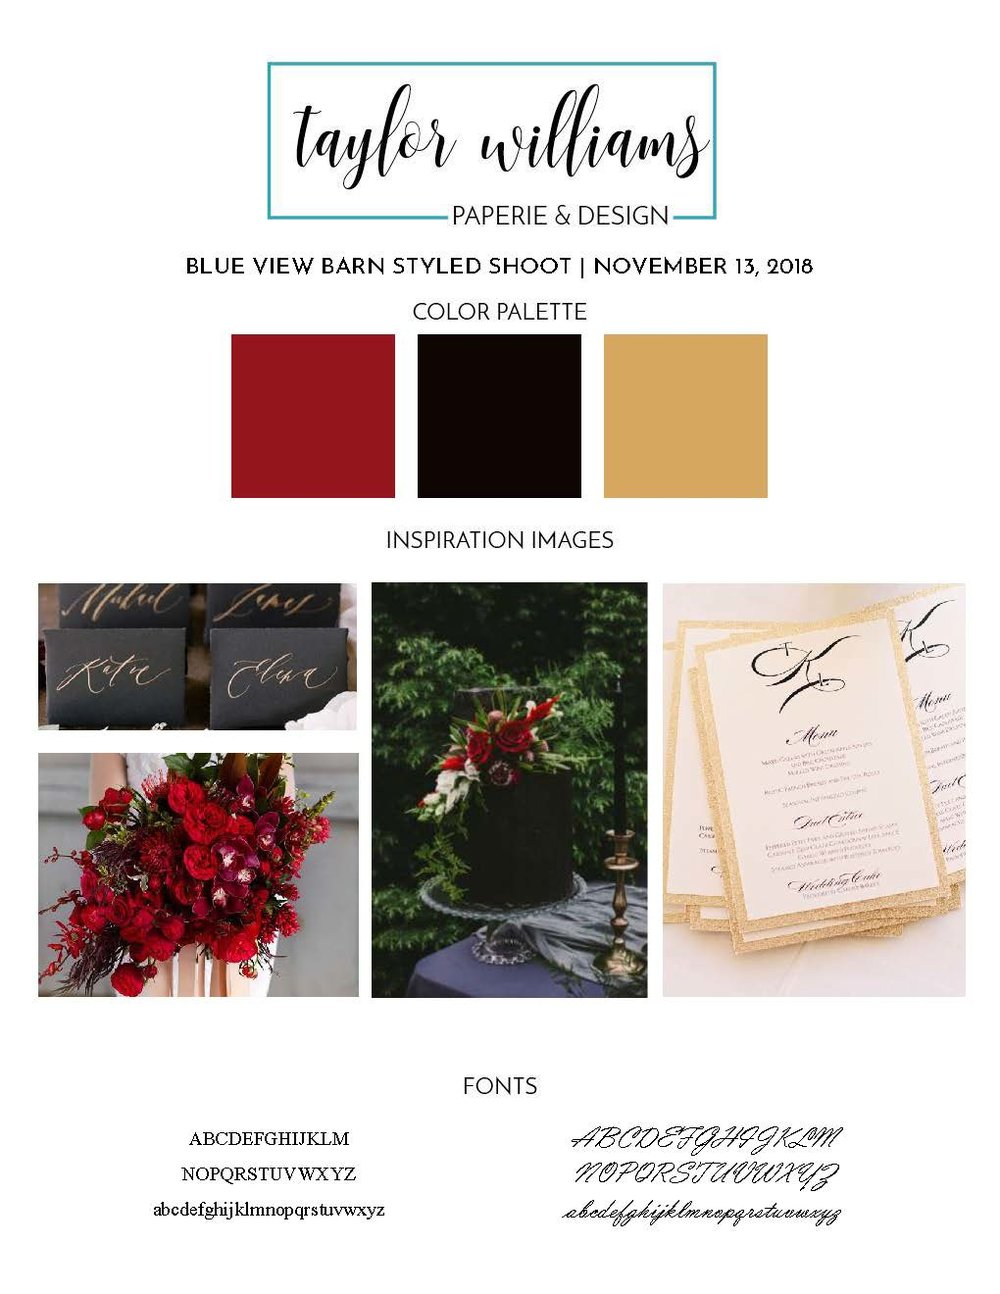 VENDORS - Event Planner: Corinne ValentinePhotographer: Chynna Pacheco PhotographyInvitation Suite: Yours Truly!Florist: Golden Petal Designs  Dress: The Collection BridalHair & Makeup: Bee Kenric  Rentals: A Chair Affair Inc.Venue: Blue View Barn